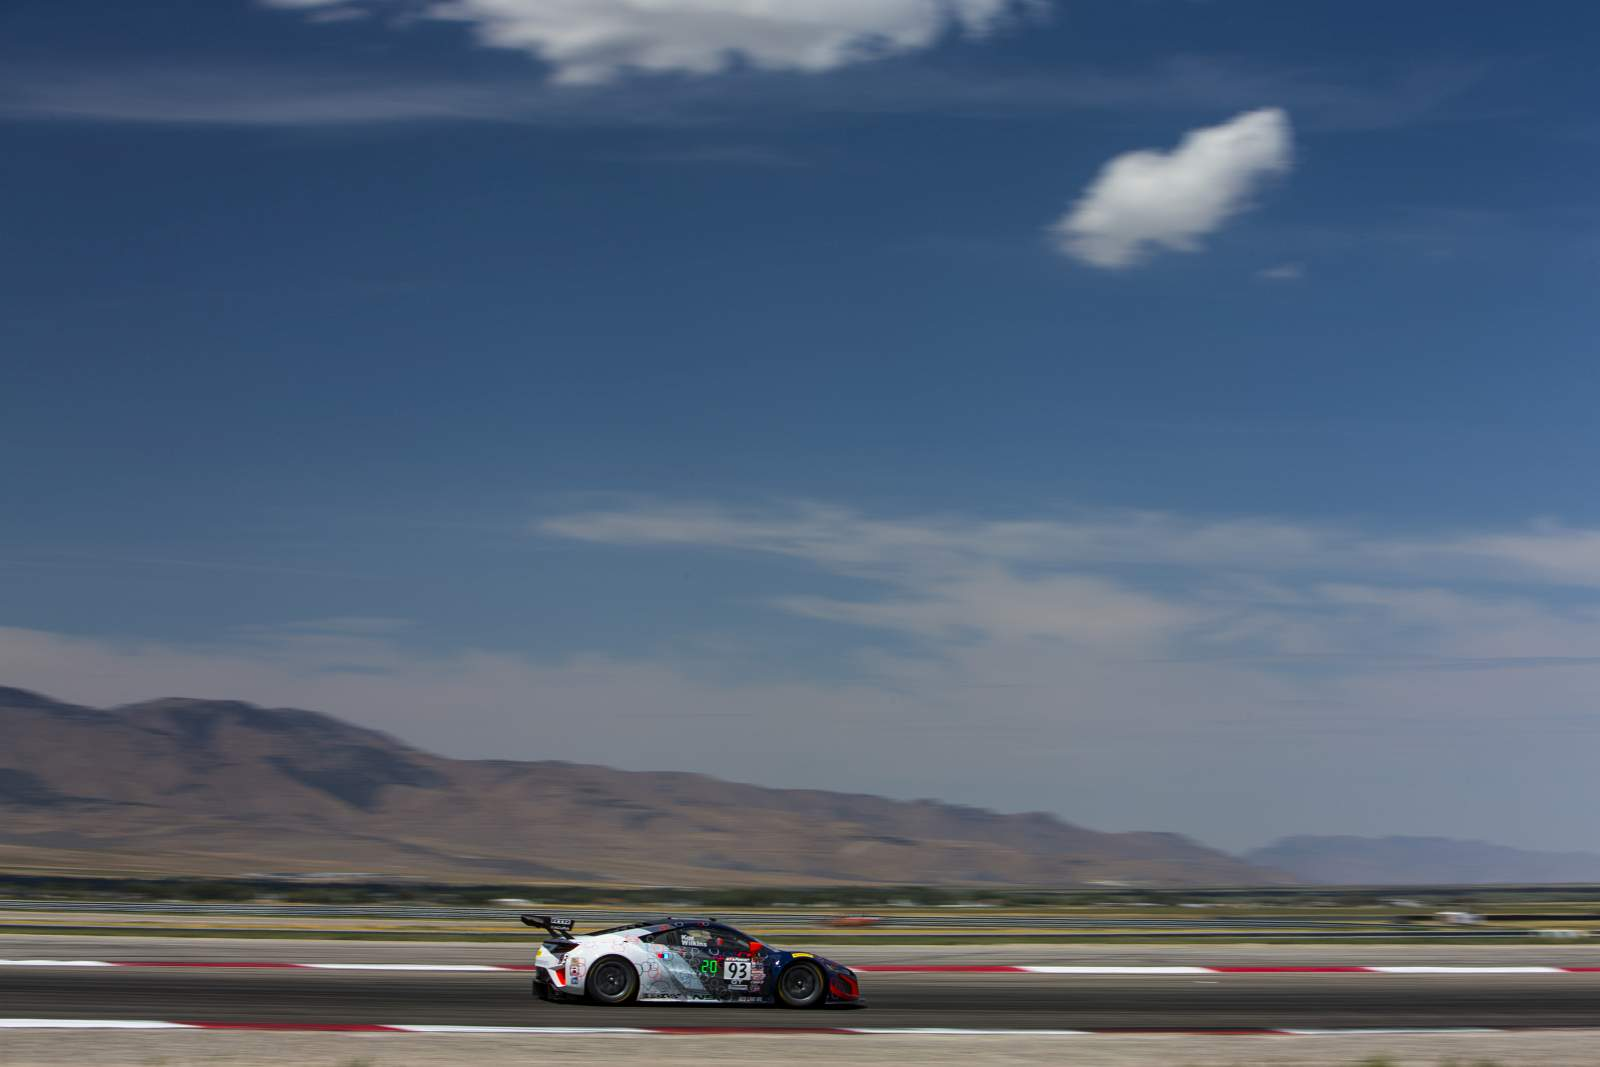 peter-kox-realtime-racing-pirelli-world-challenge-utah-motorsport-campus--205